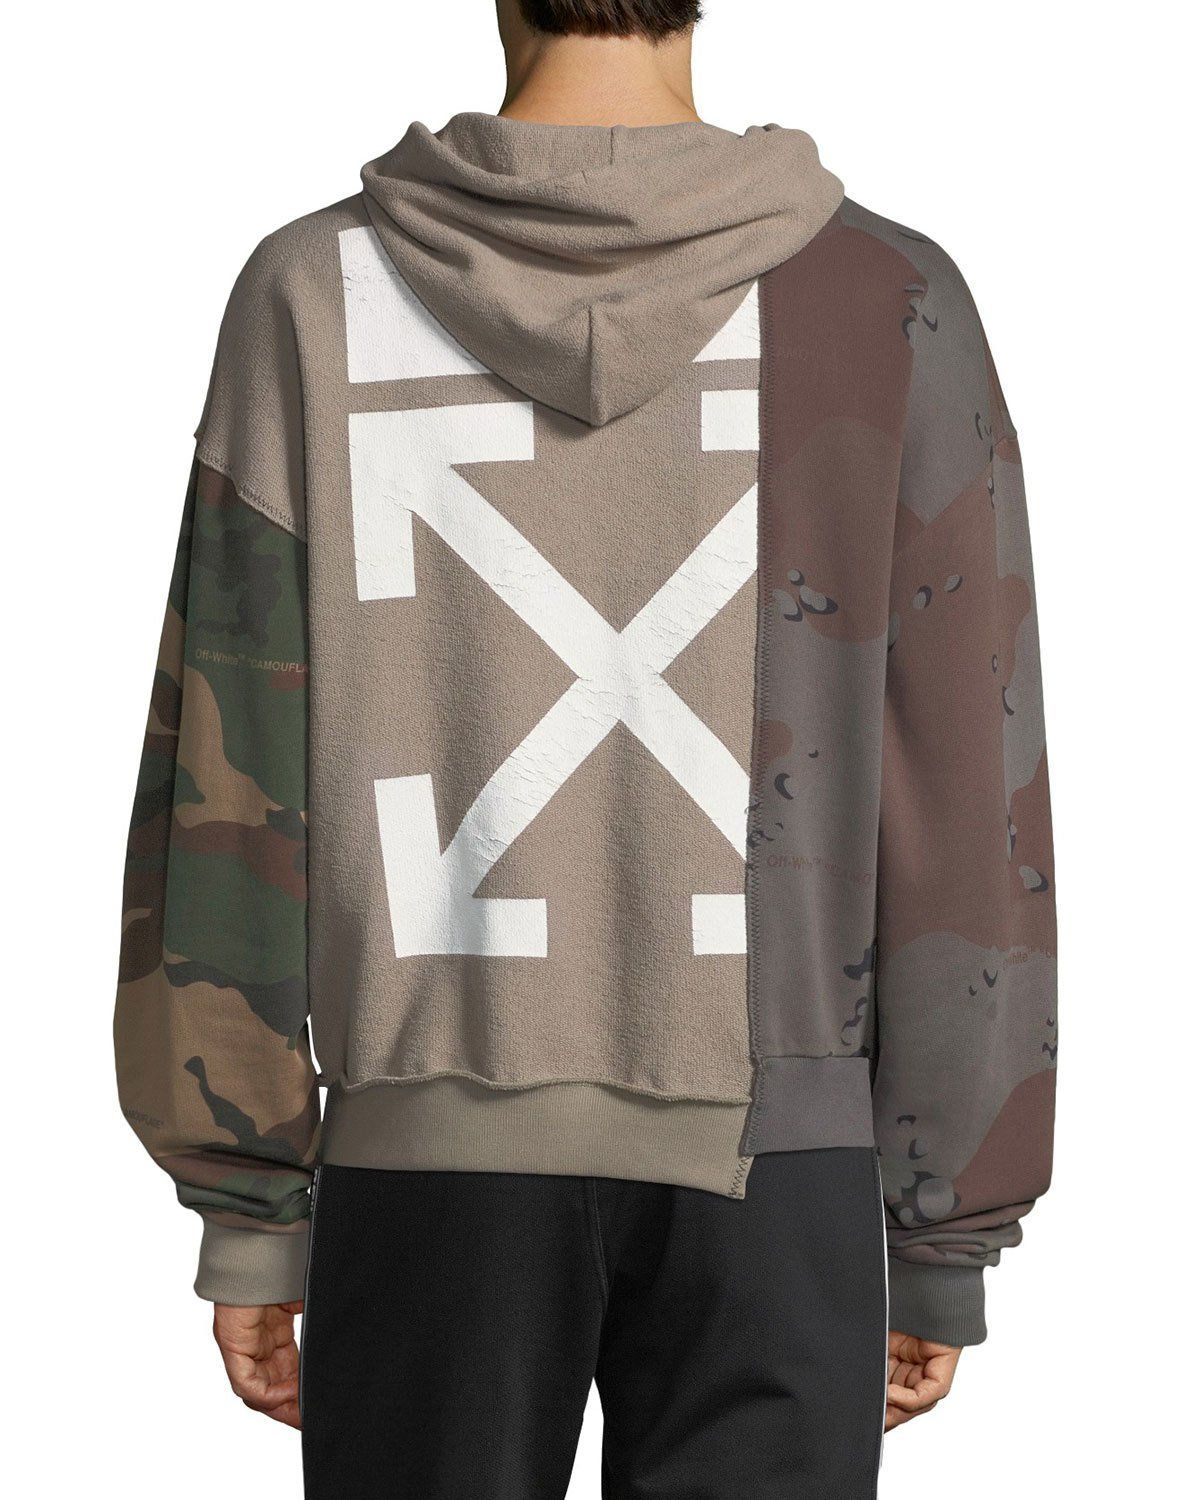 Off White Men S Reconstructed Camo Print Hoodie Sweatshirt Hoodie Print Off White Hoodie Men Off White Hoodie [ 1500 x 1200 Pixel ]